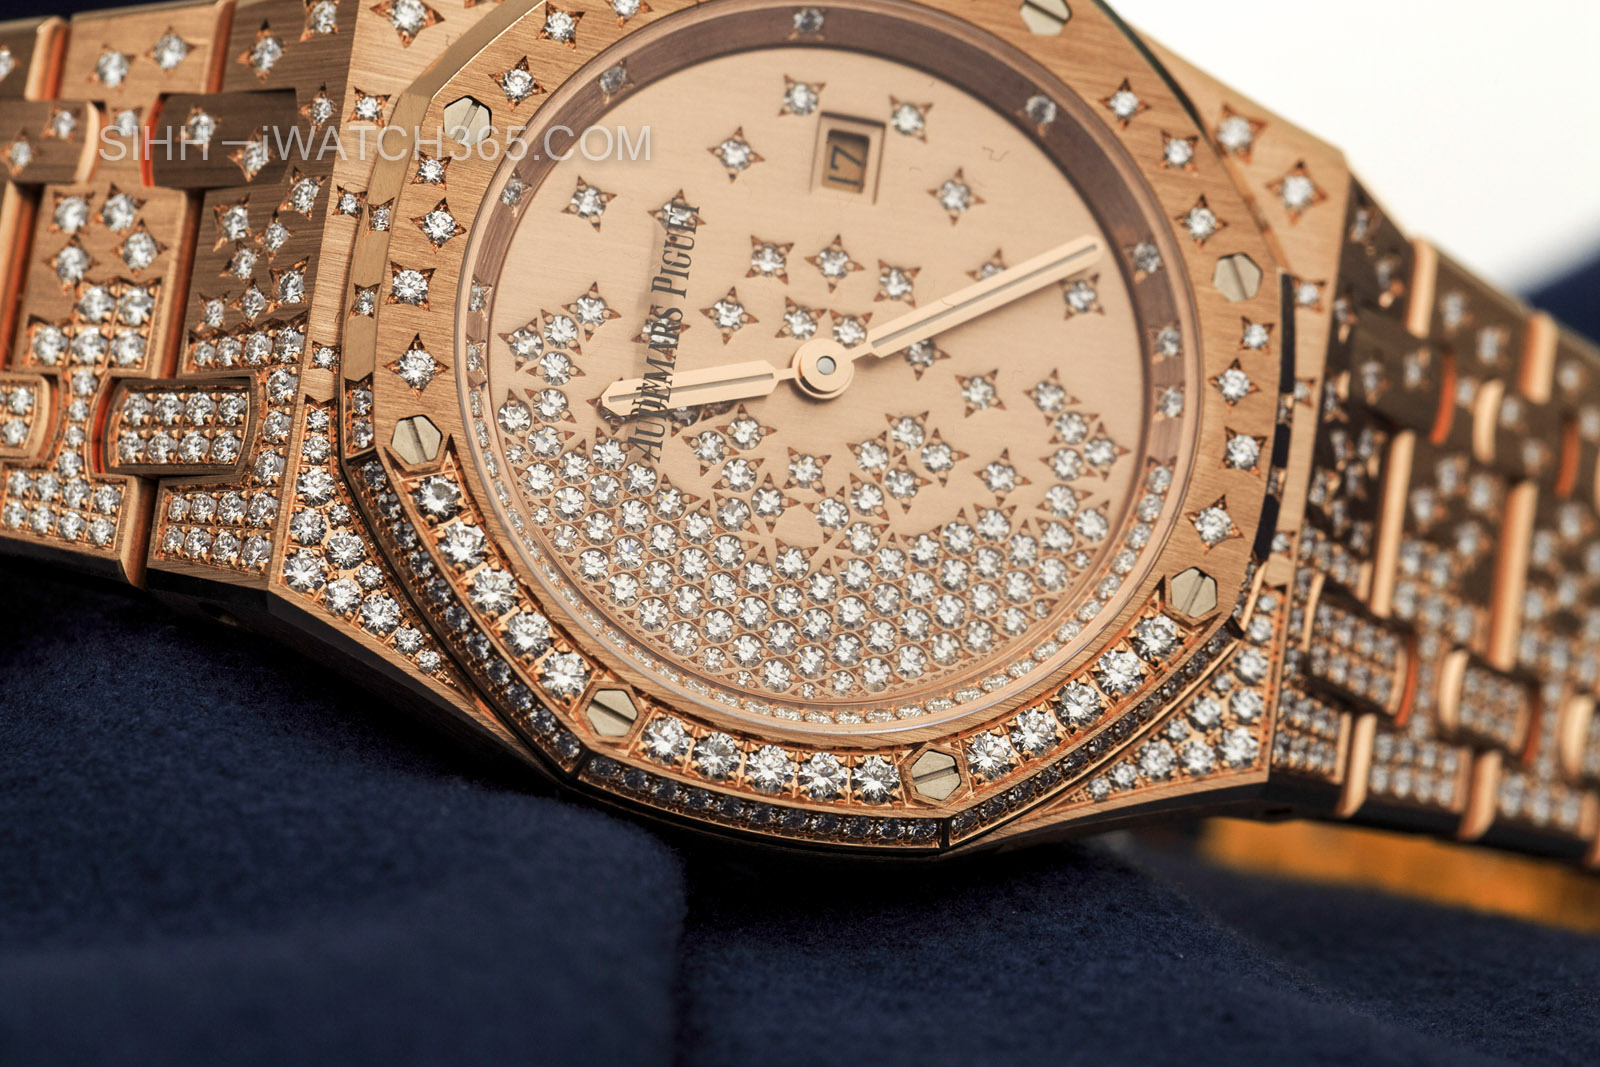 Audemars Piguet Royal Oak diamonds replica watch